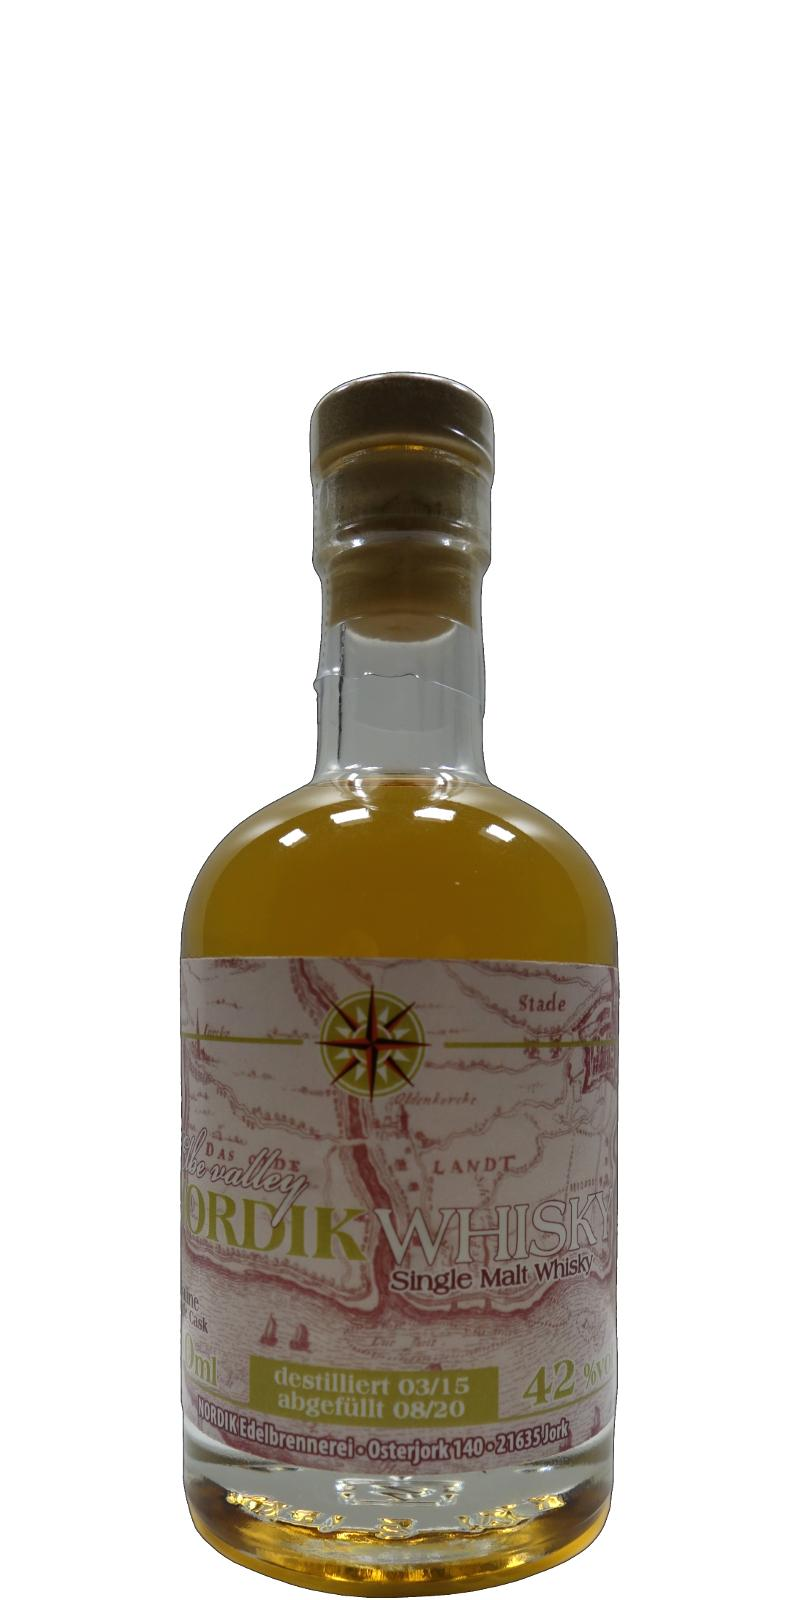 Elbe-Valley NORDIK Whisky 2015